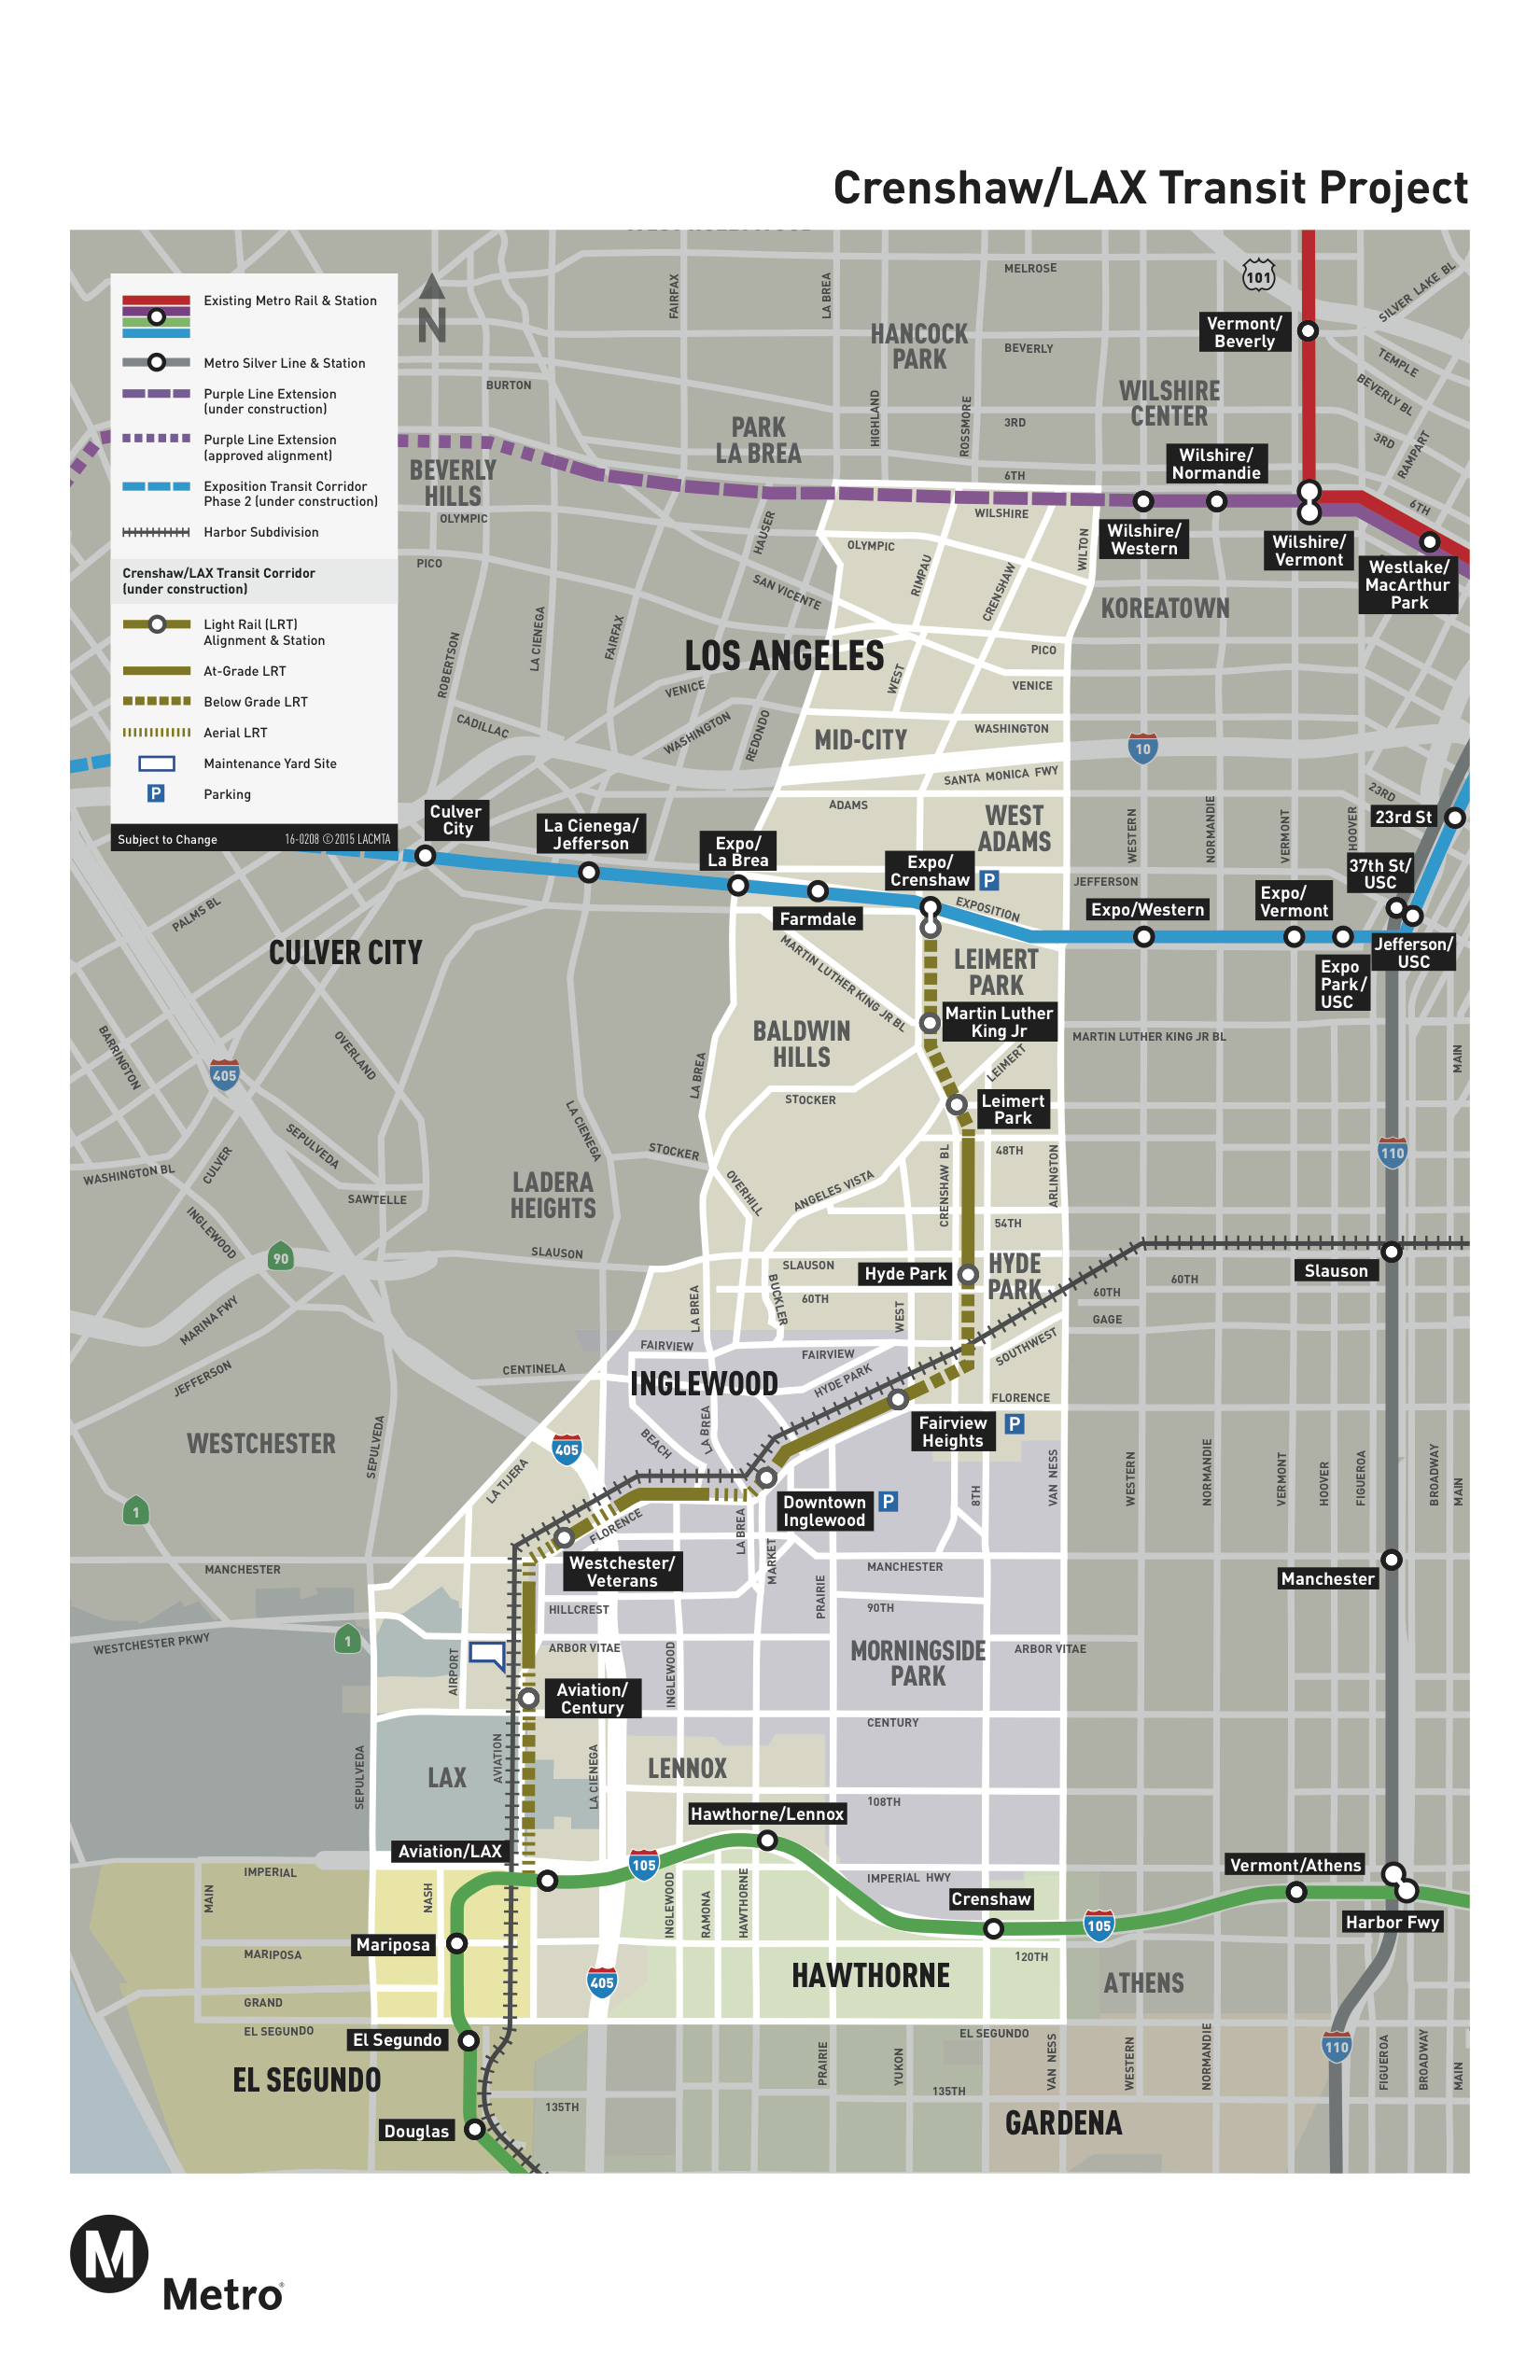 Diagram Of Tunnel Boring Machine Trusted Wiring Bertha Harriet The Reaches Crenshaw Lax Lines